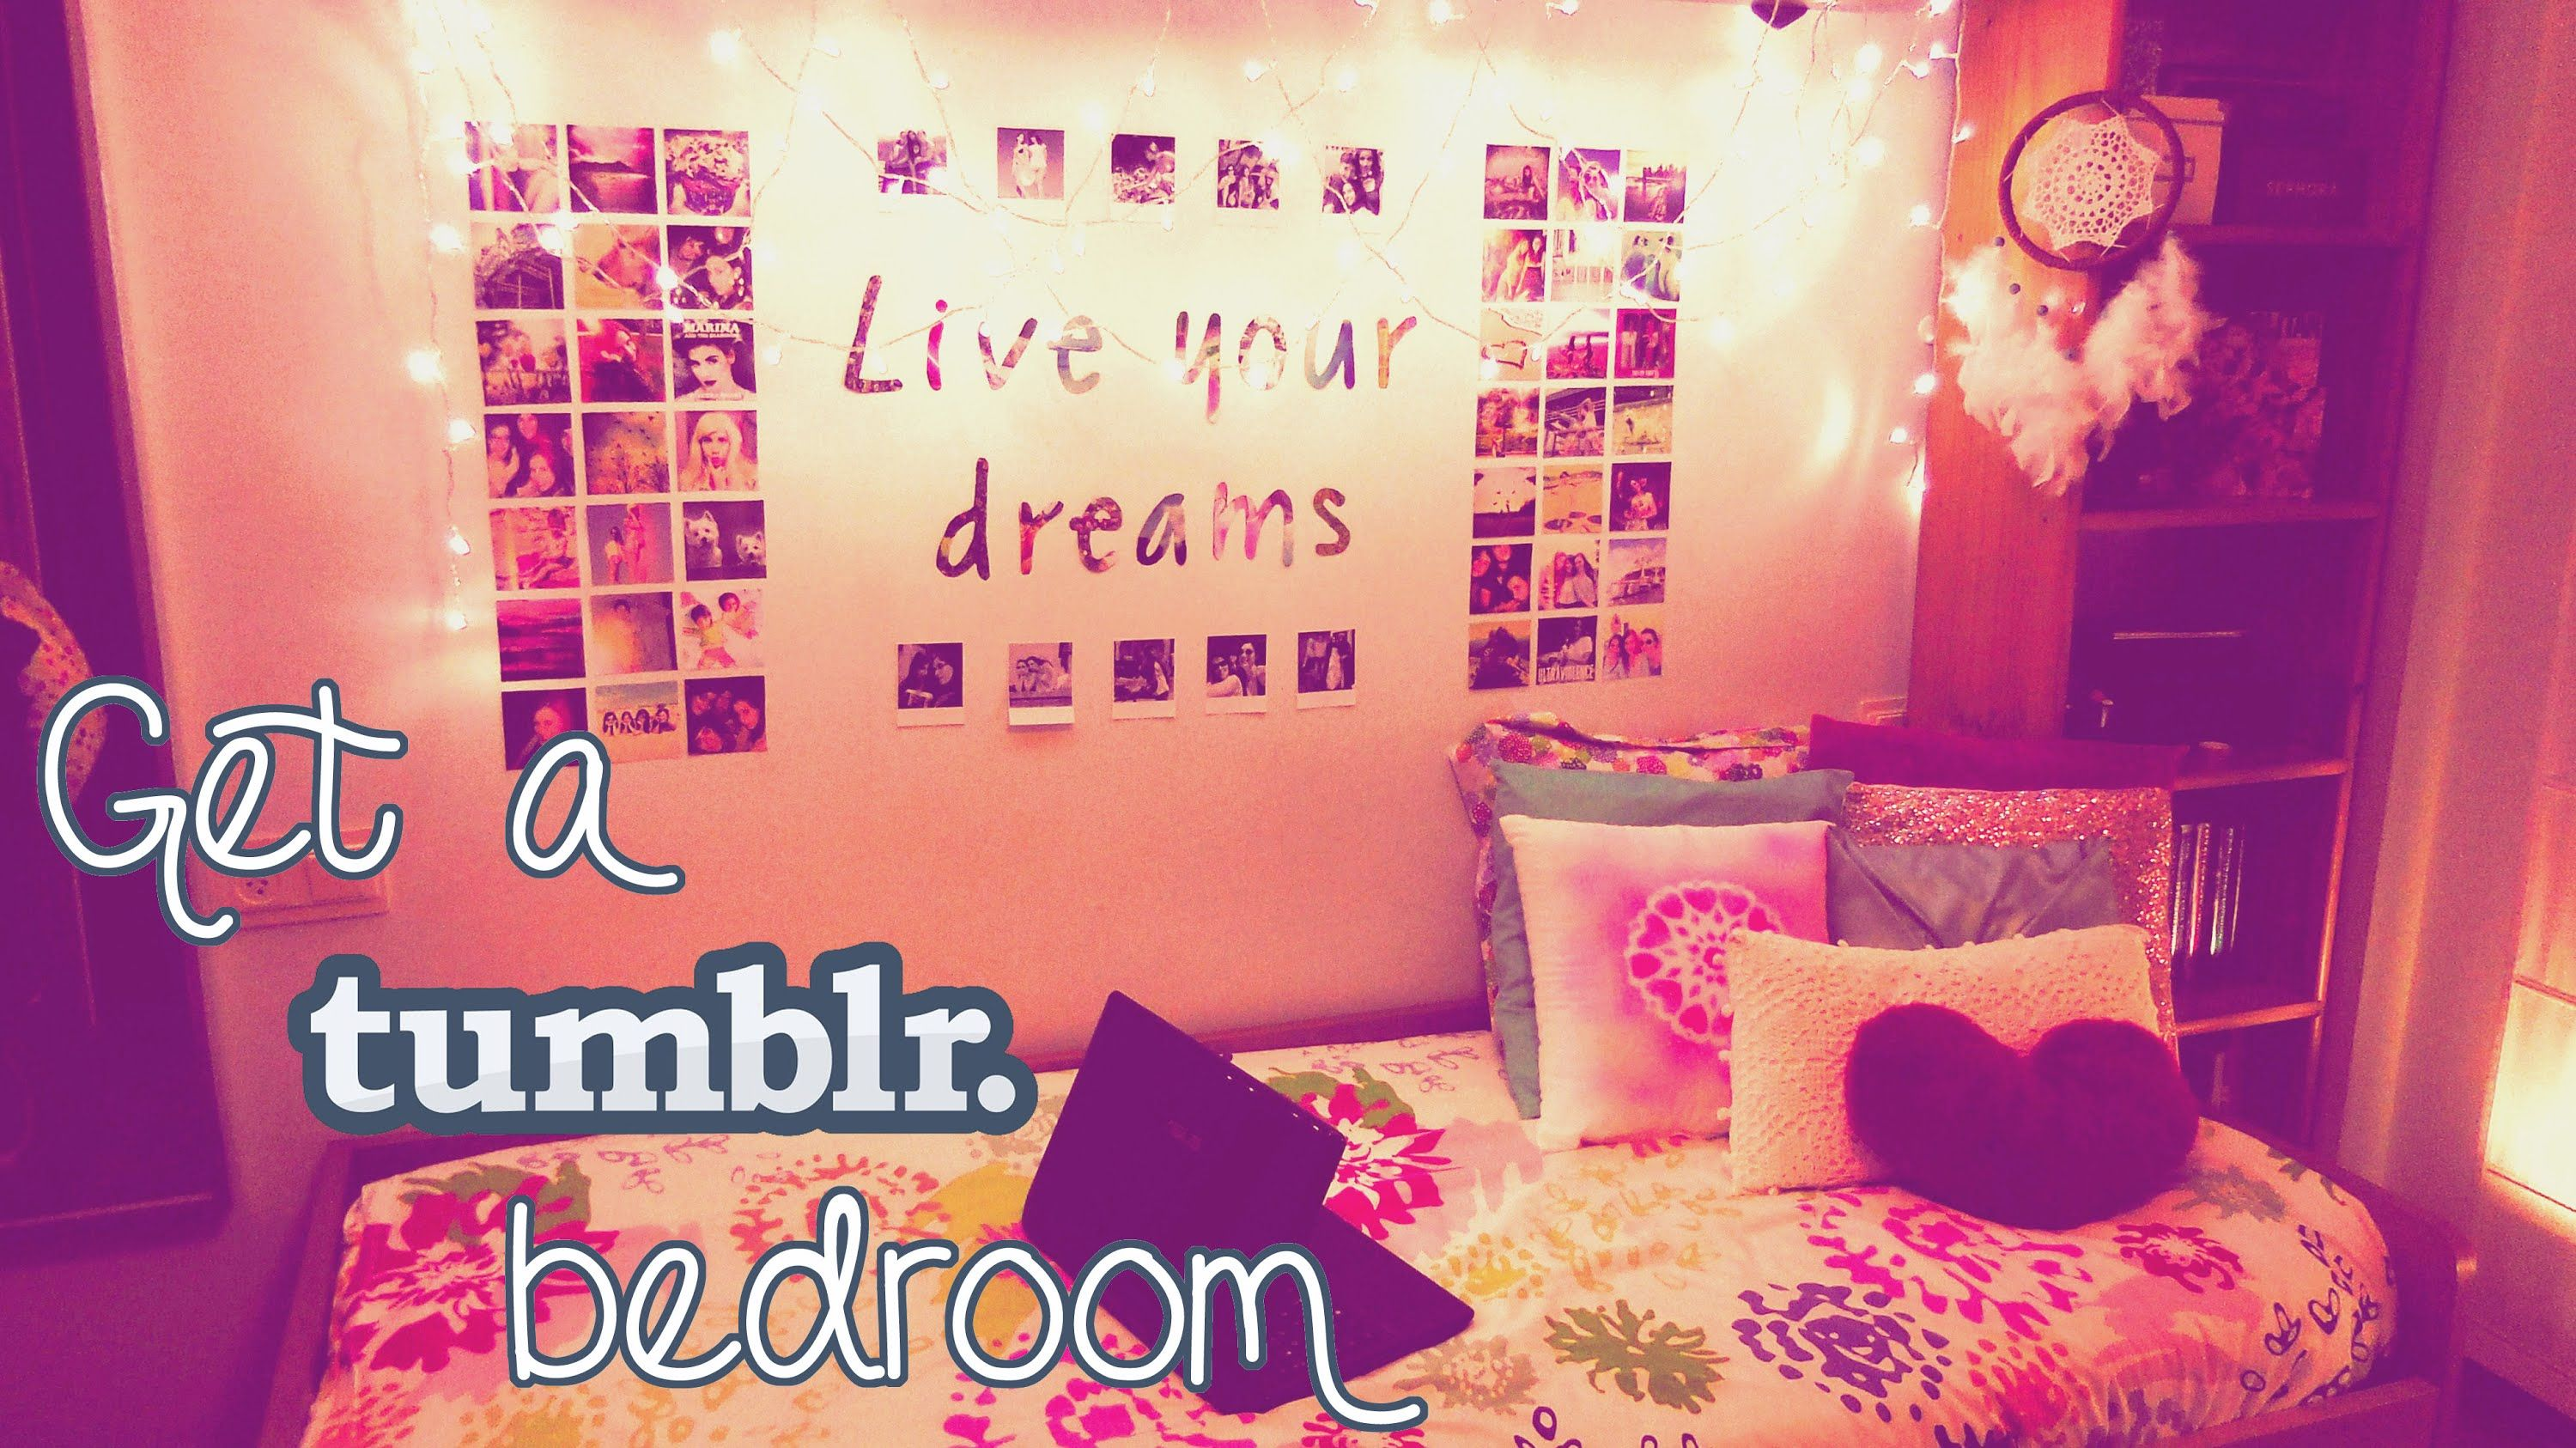 Diy Tumblr Inspired Room Decor Ideas Cheap Easy Projects Diy Tumblr Tumblr Room Decor Diy Room Decor Tumblr